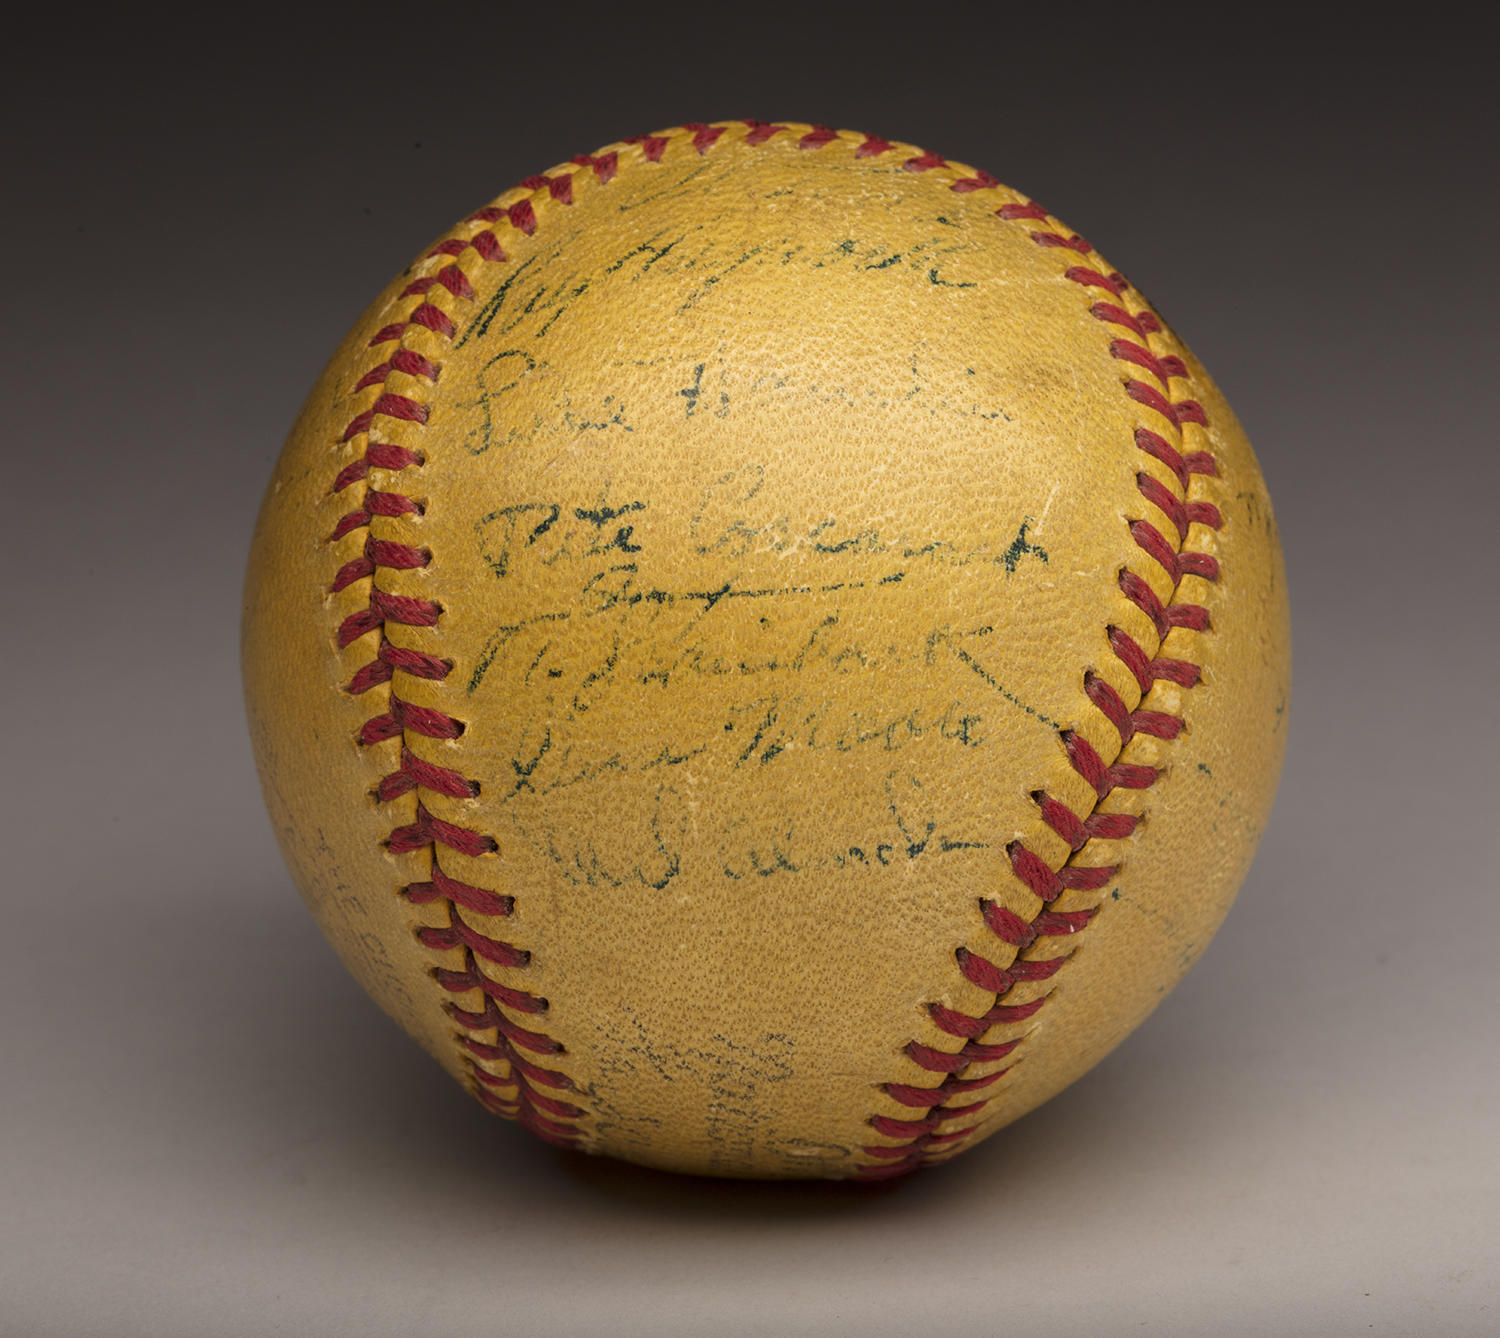 This experimental yellow baseball used during the 1930s was recently donated to the Museum. The autographs were signed by players at Ebbets Field. (By Photographer Milo Stewart Jr./National Baseball Hall of Fame and Museum)